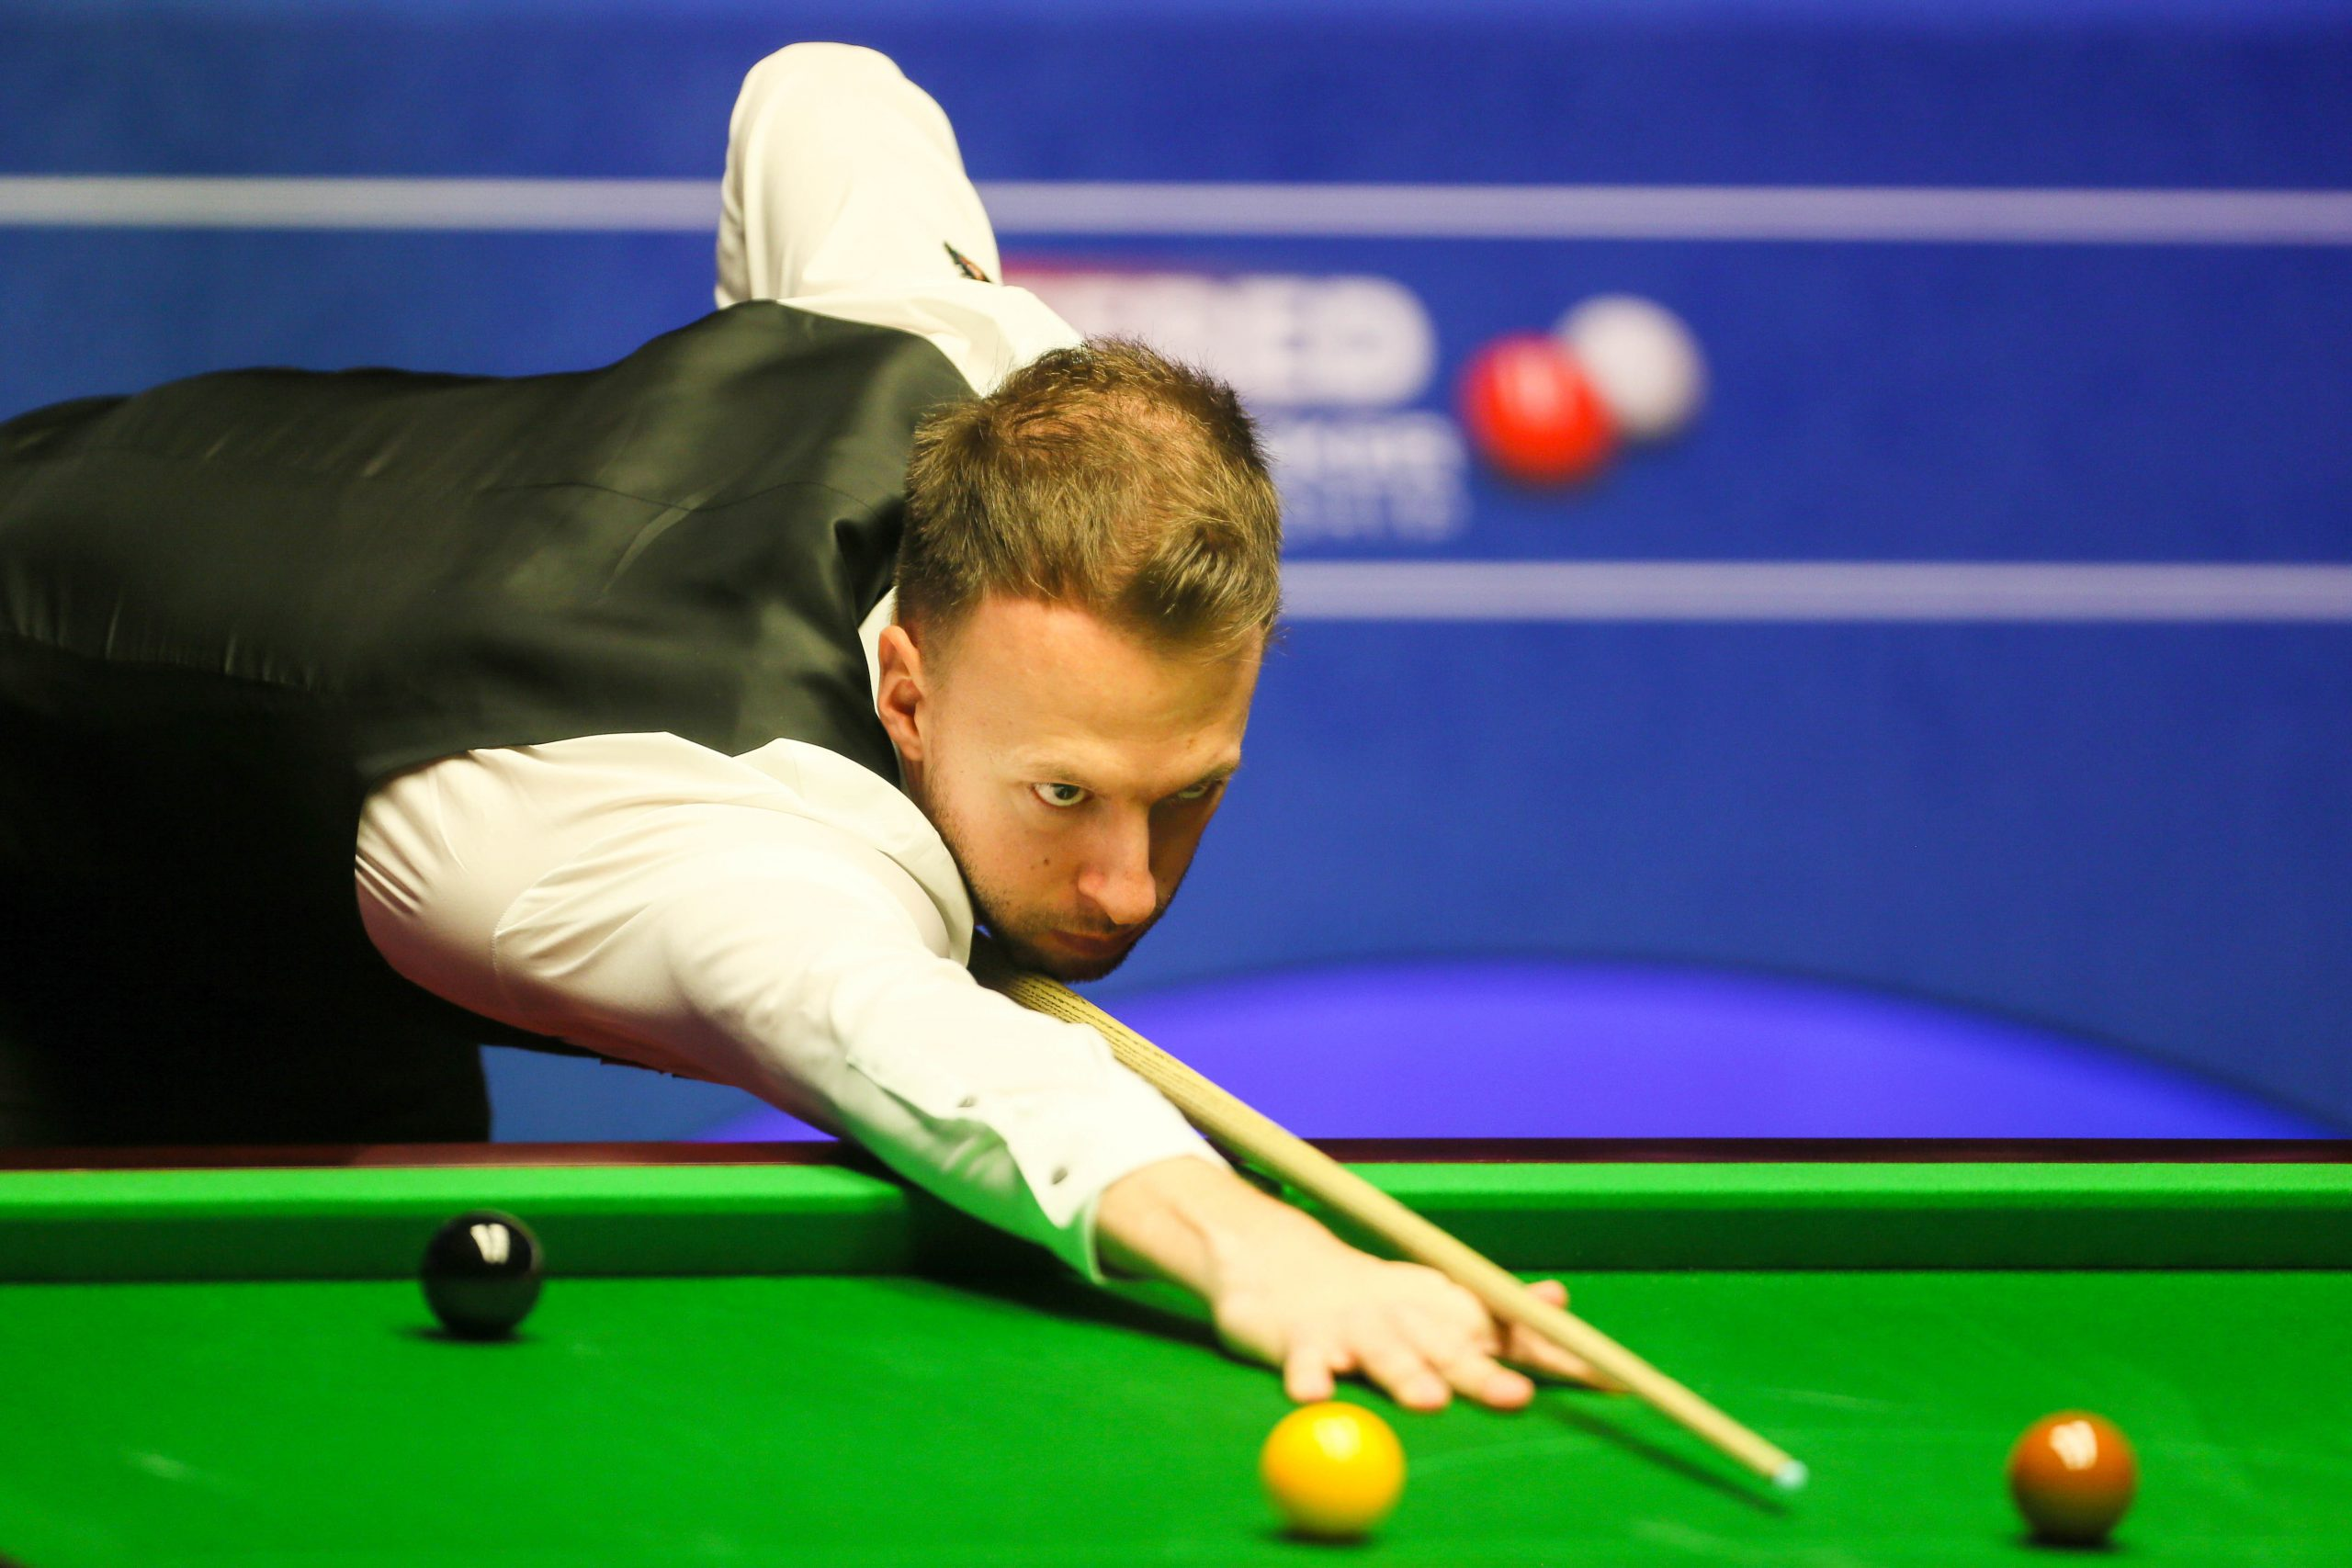 Championship-Snooker-Judd-Trump-is-the-first-player-in-snooker-history-to-win-six-ranking-titles-in-a-single-season-He-can-win-a-7th-by-winning-the-Tour-Championship-in-Wales